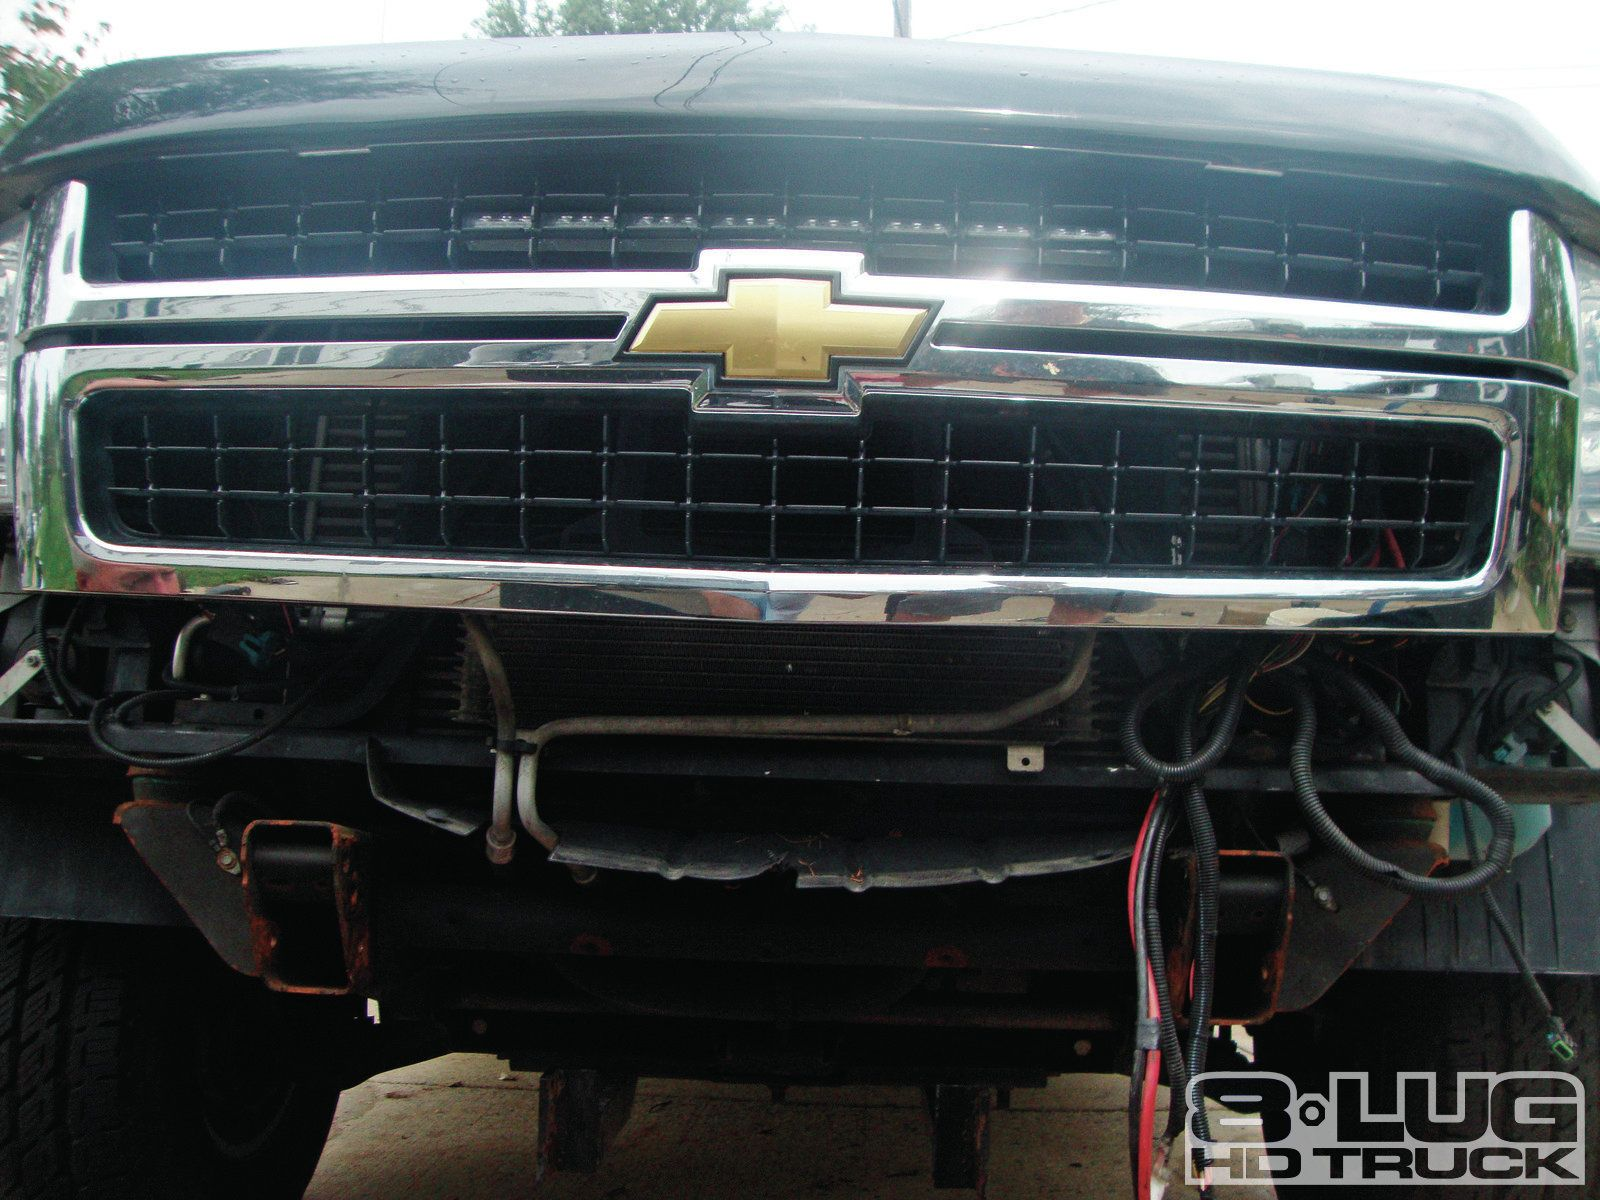 1210-8l-02+winch-time-ultimate-tow-and-work-truck-upgrades+brackets-bolted-to-backside.jpg